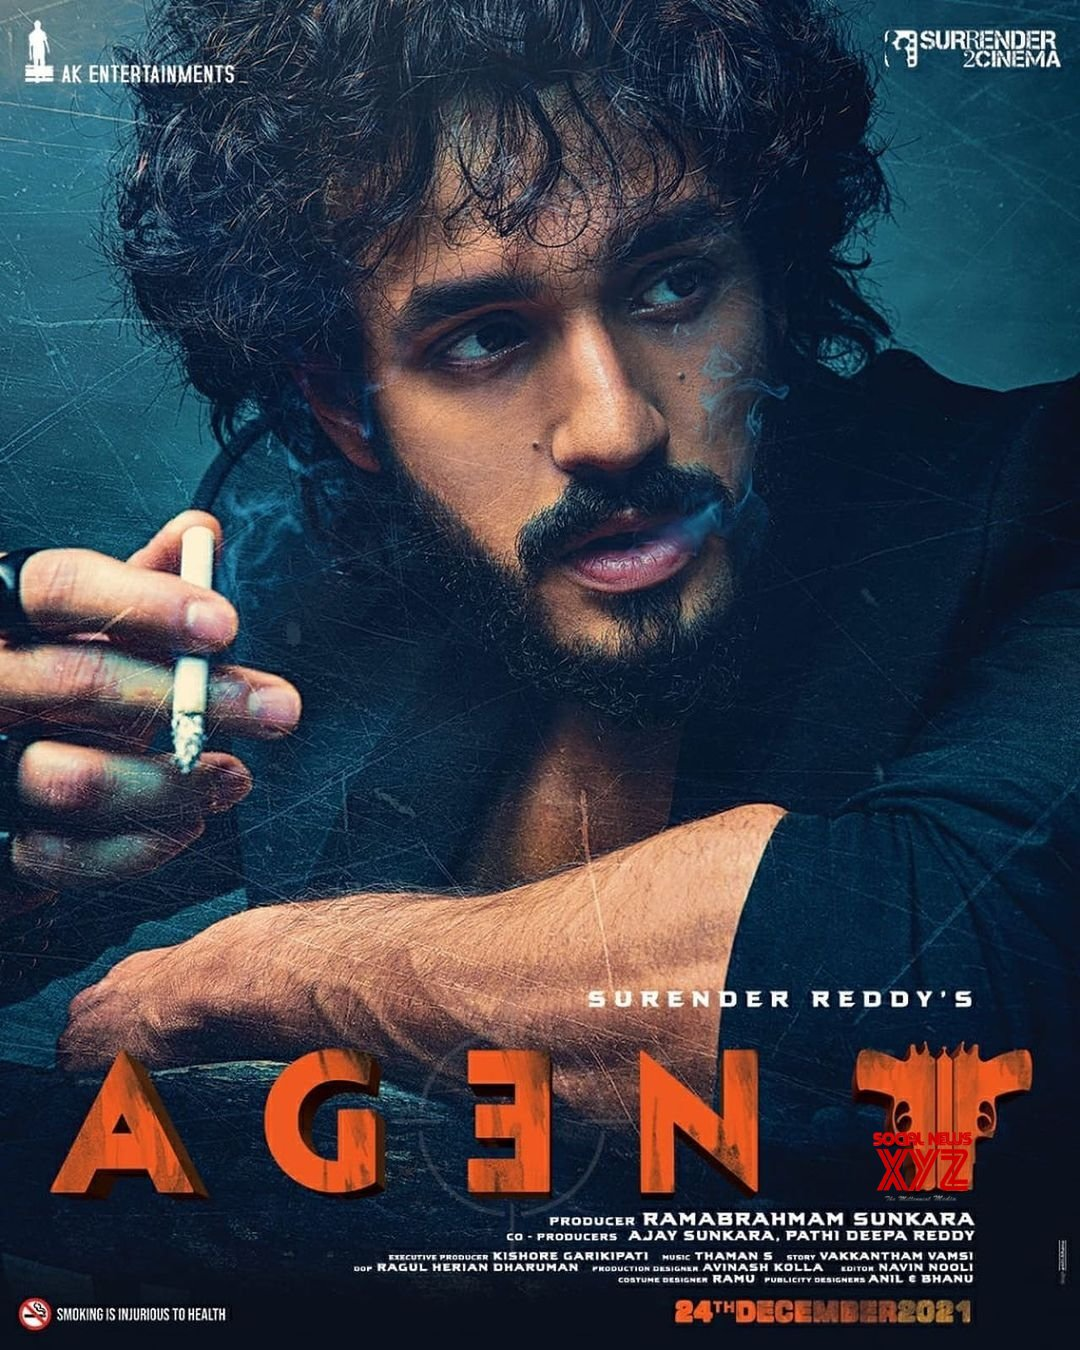 Free Photo: Akhil Akkineni unveils 'Agent' first look, title on b'day #Gallery